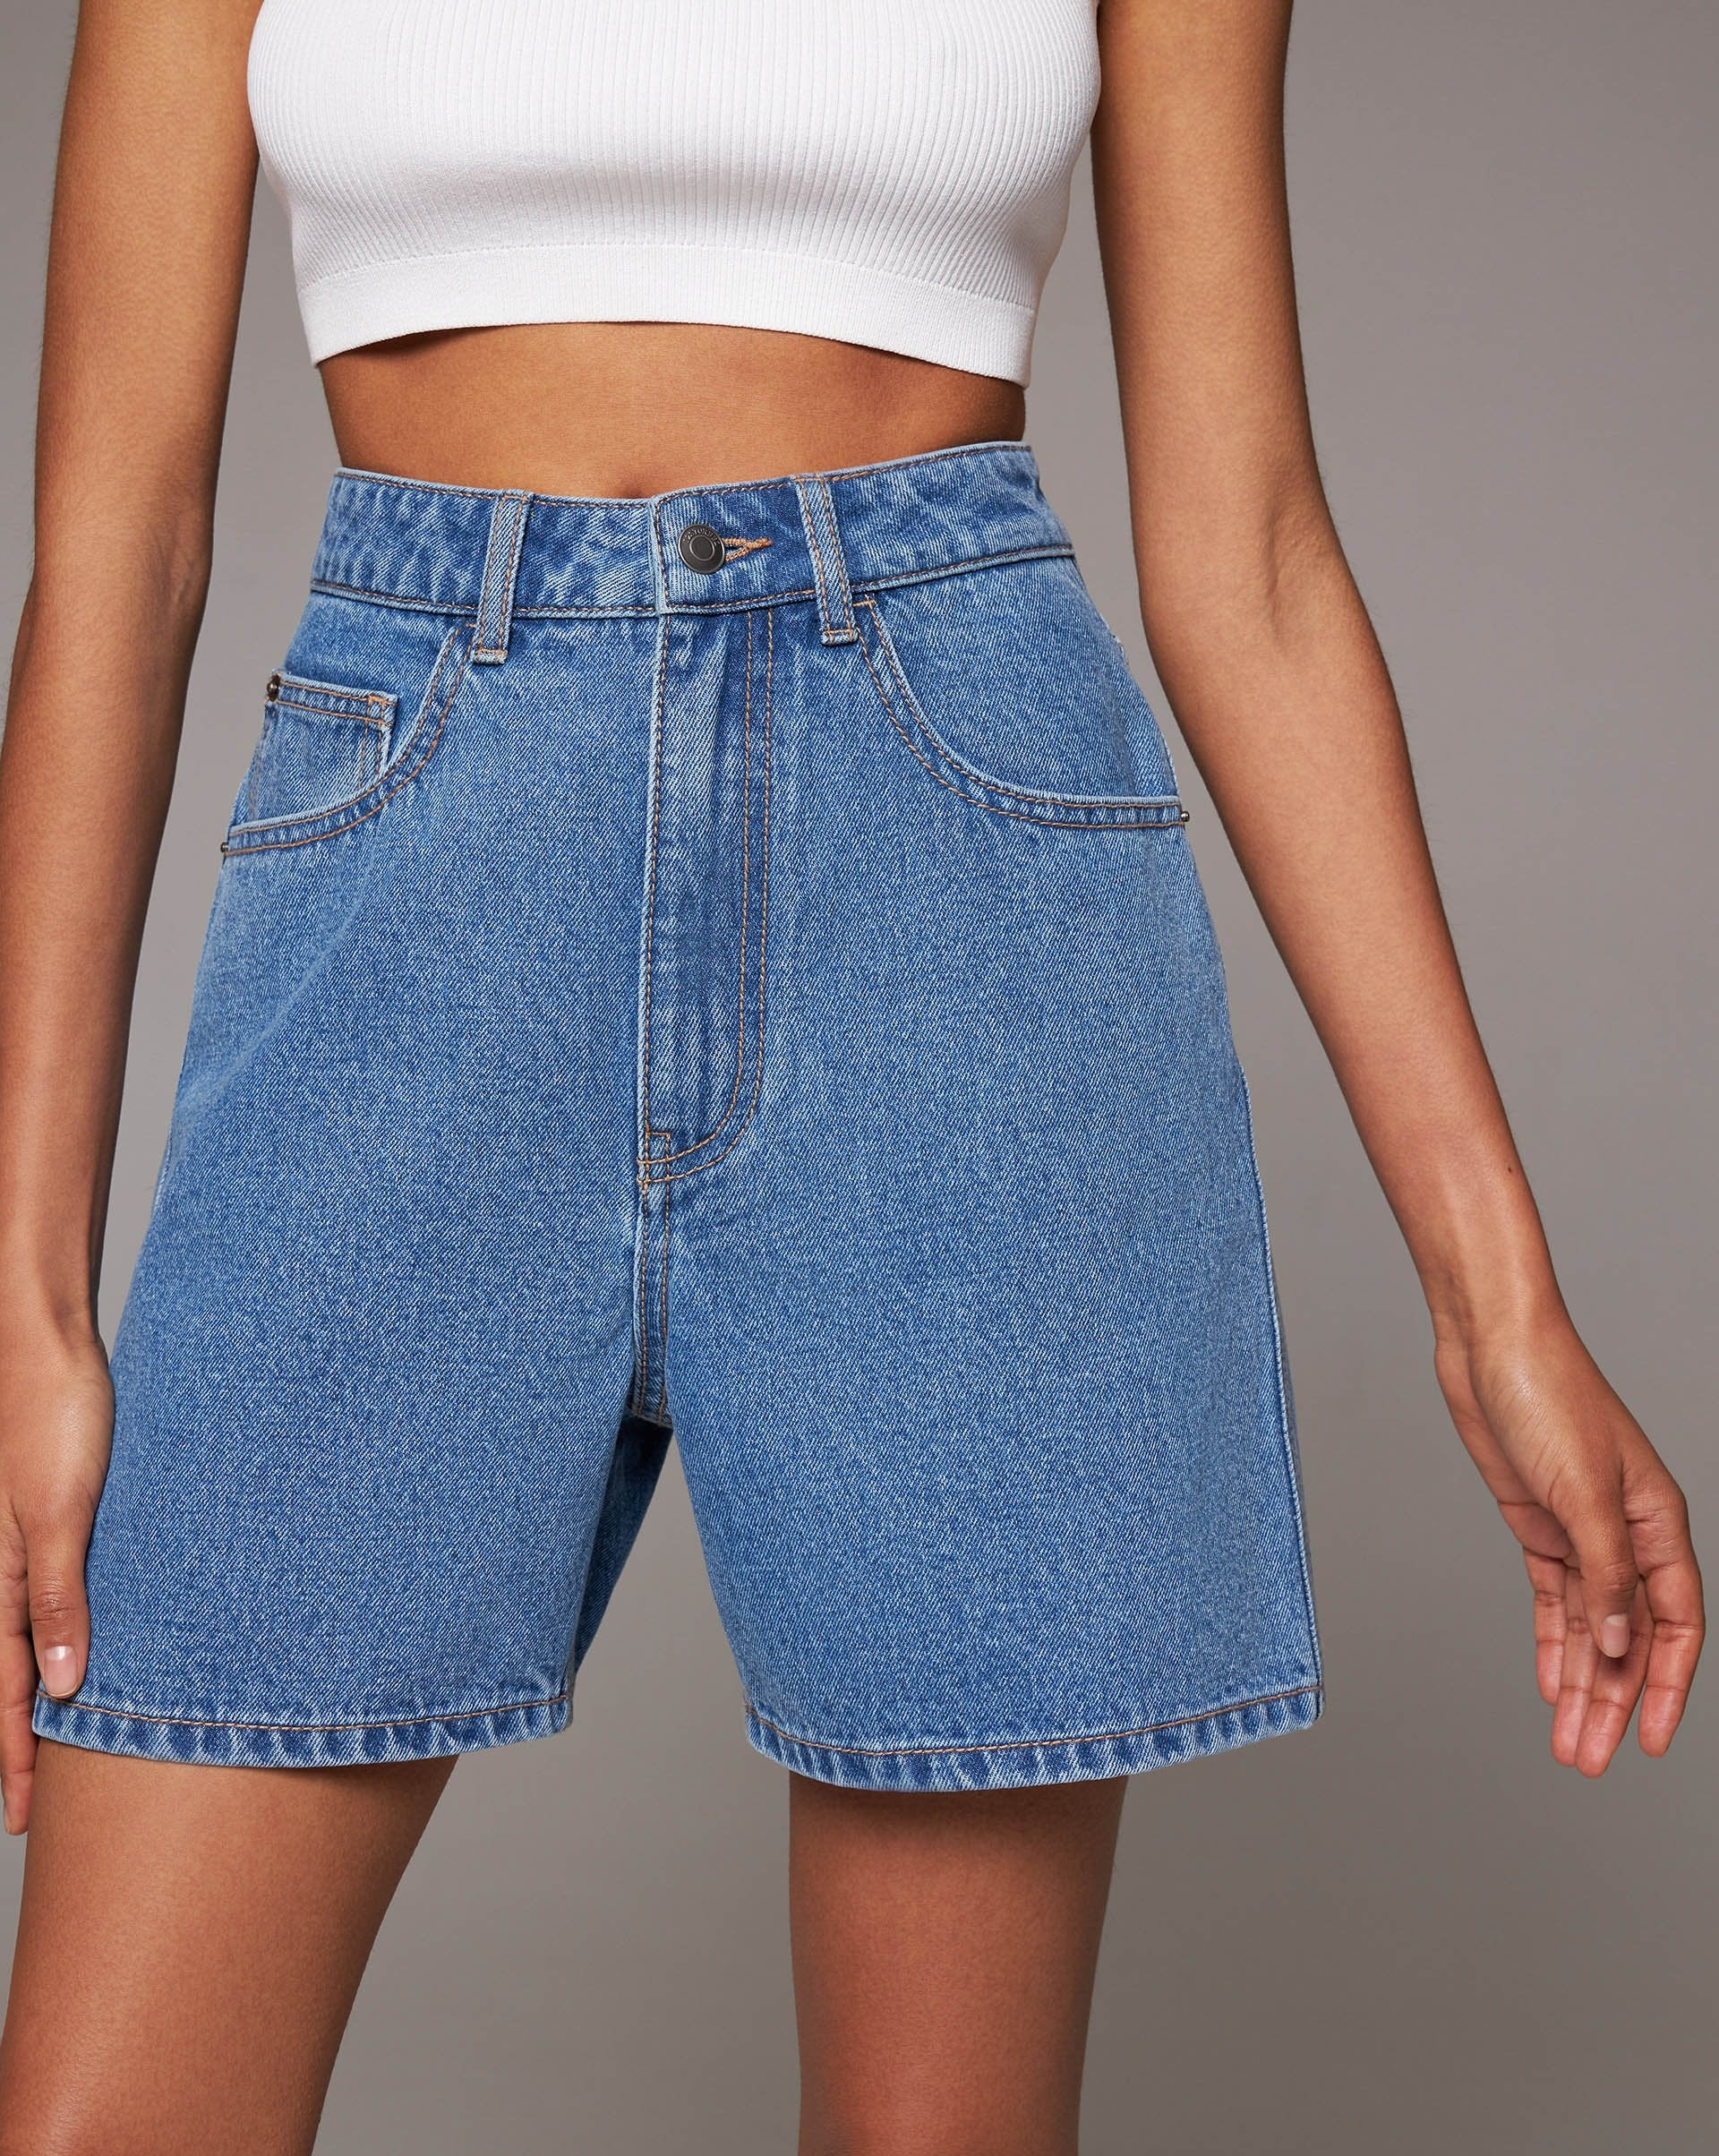 High rise denim shorts - 12 STOREEZ